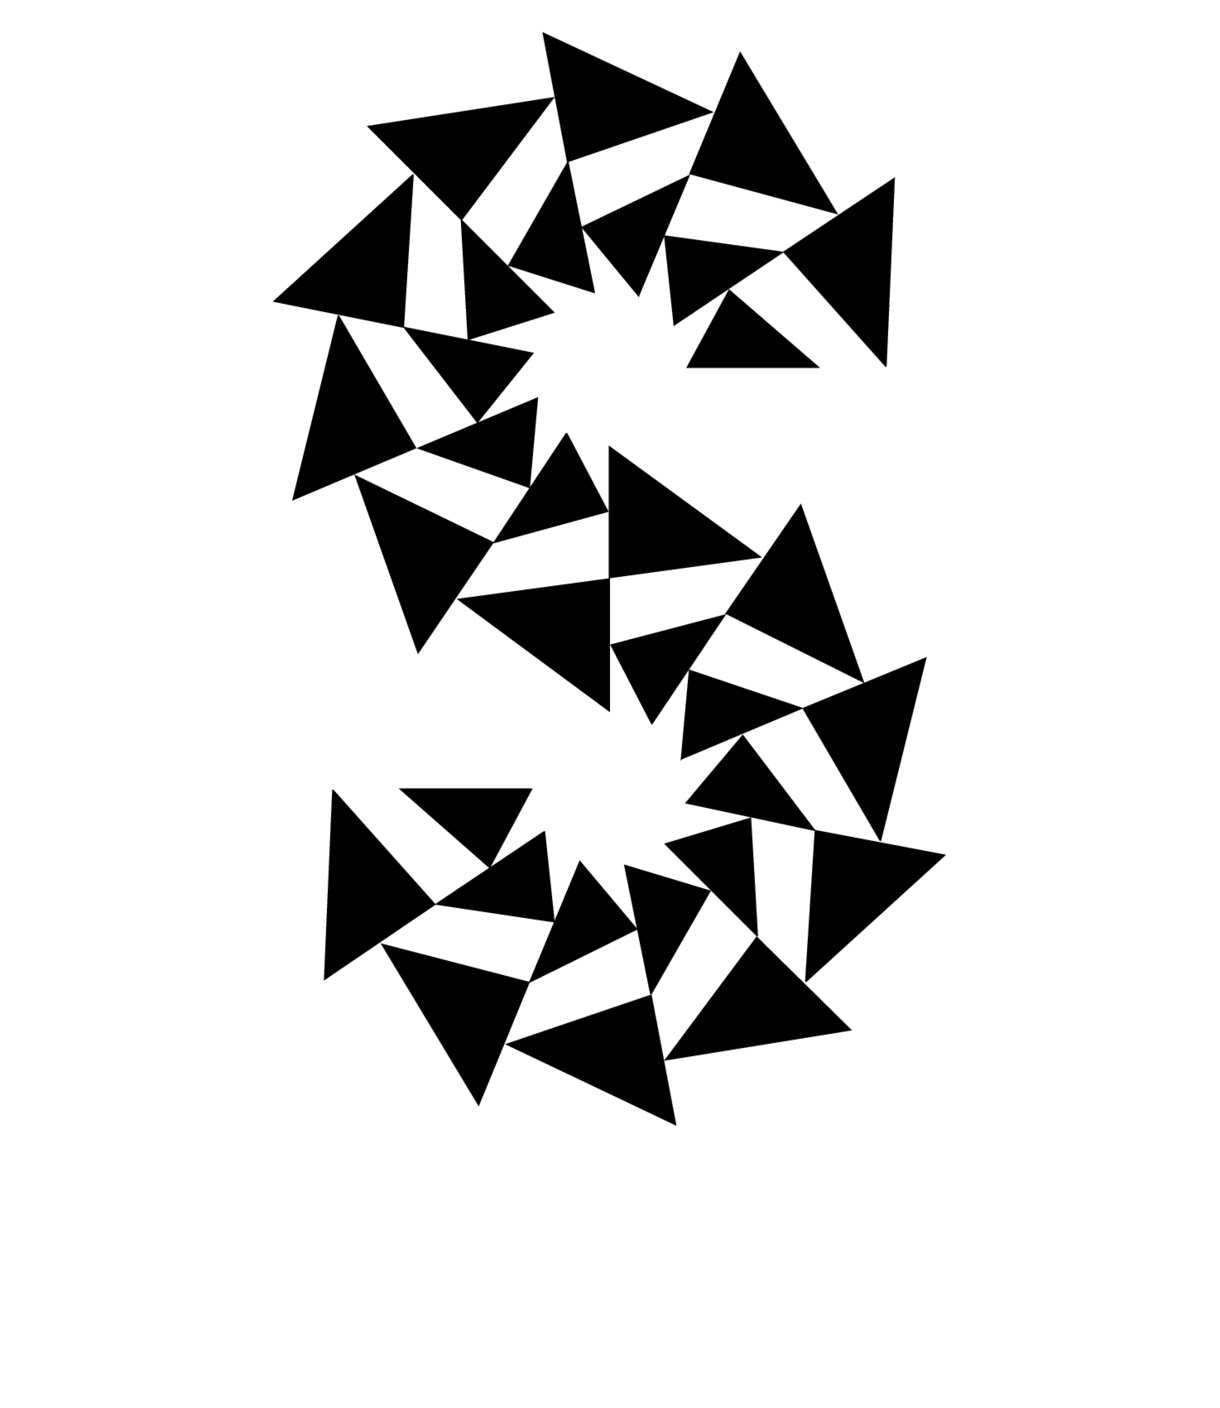 pattern-project-letters-18-1220x1407px